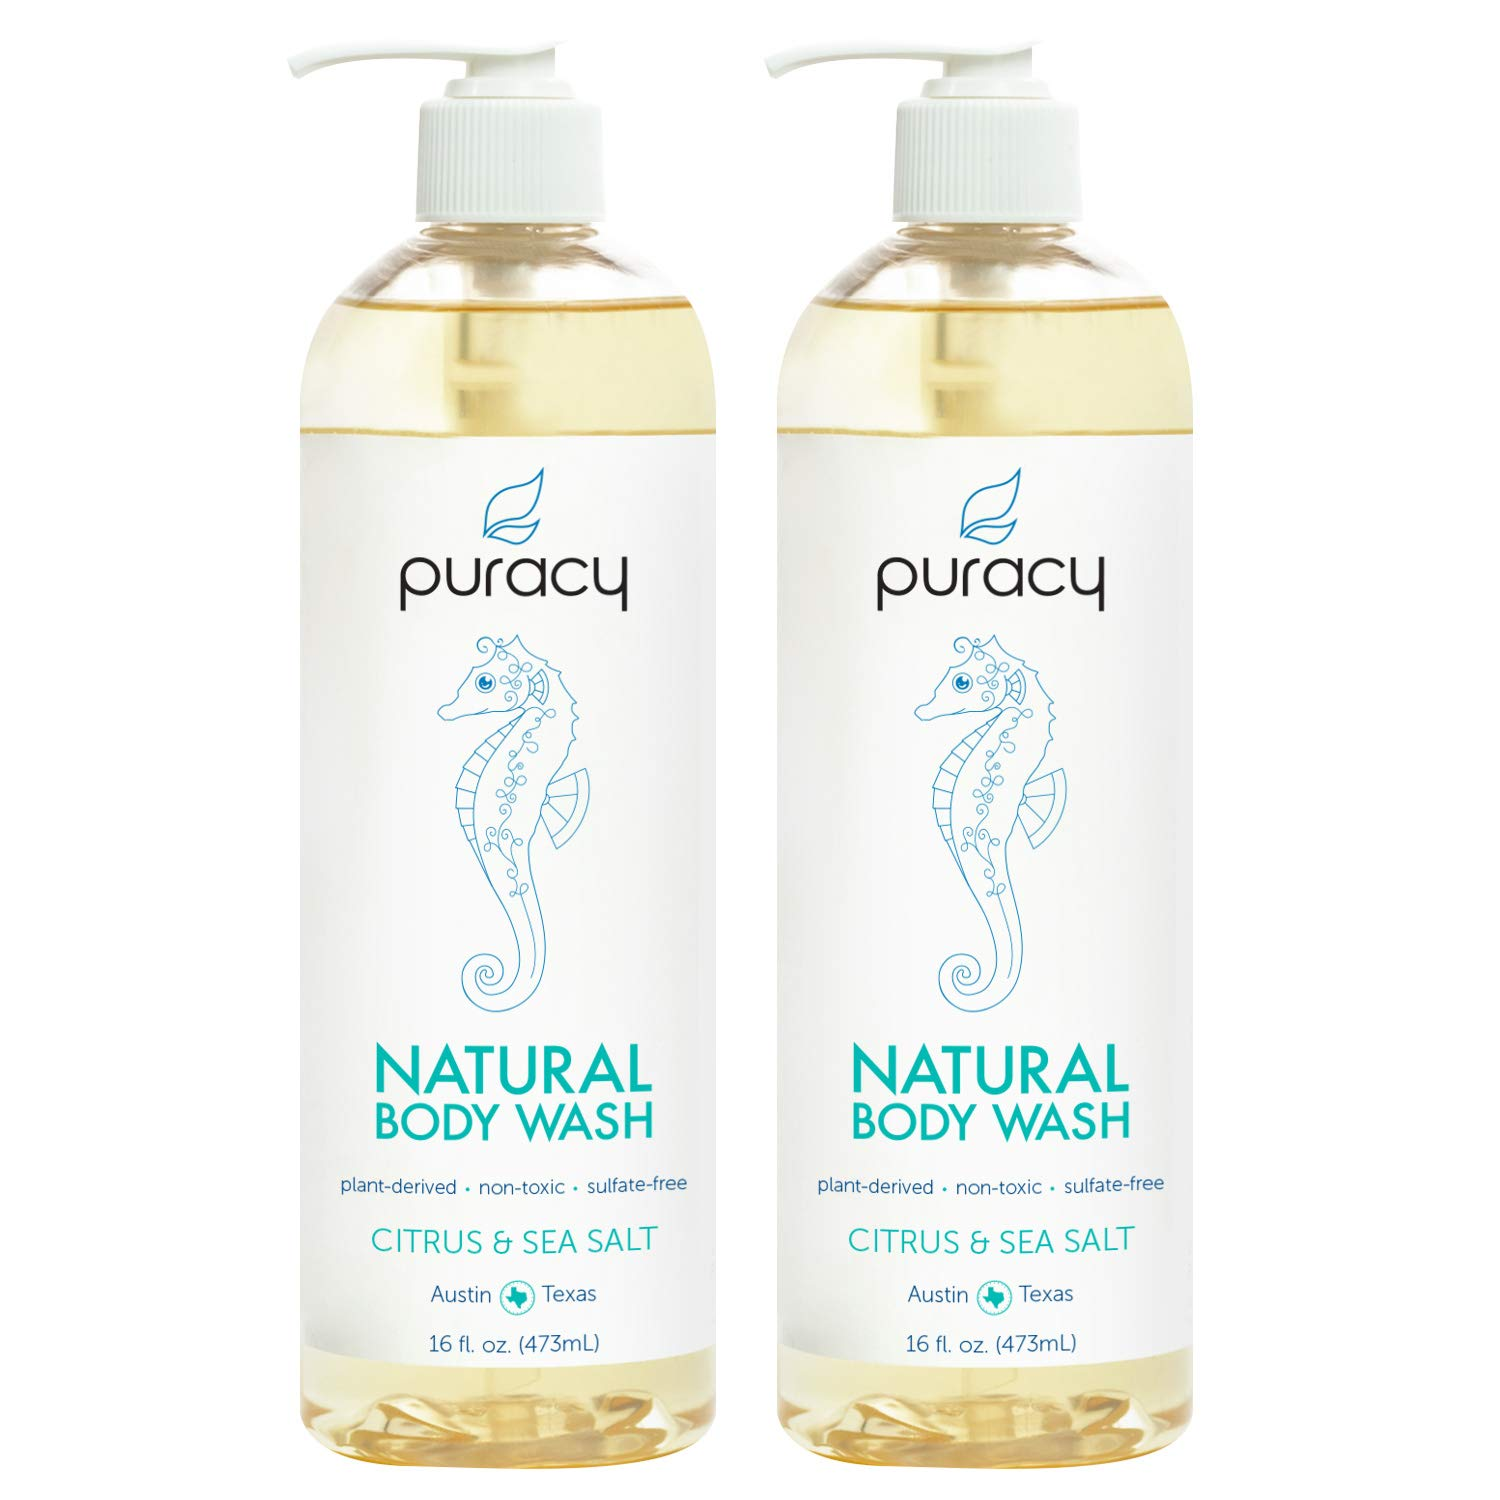 Puracy Natural Body Wash, Citrus & Sea Salt, Sulfate-Free Bath and Shower Gel